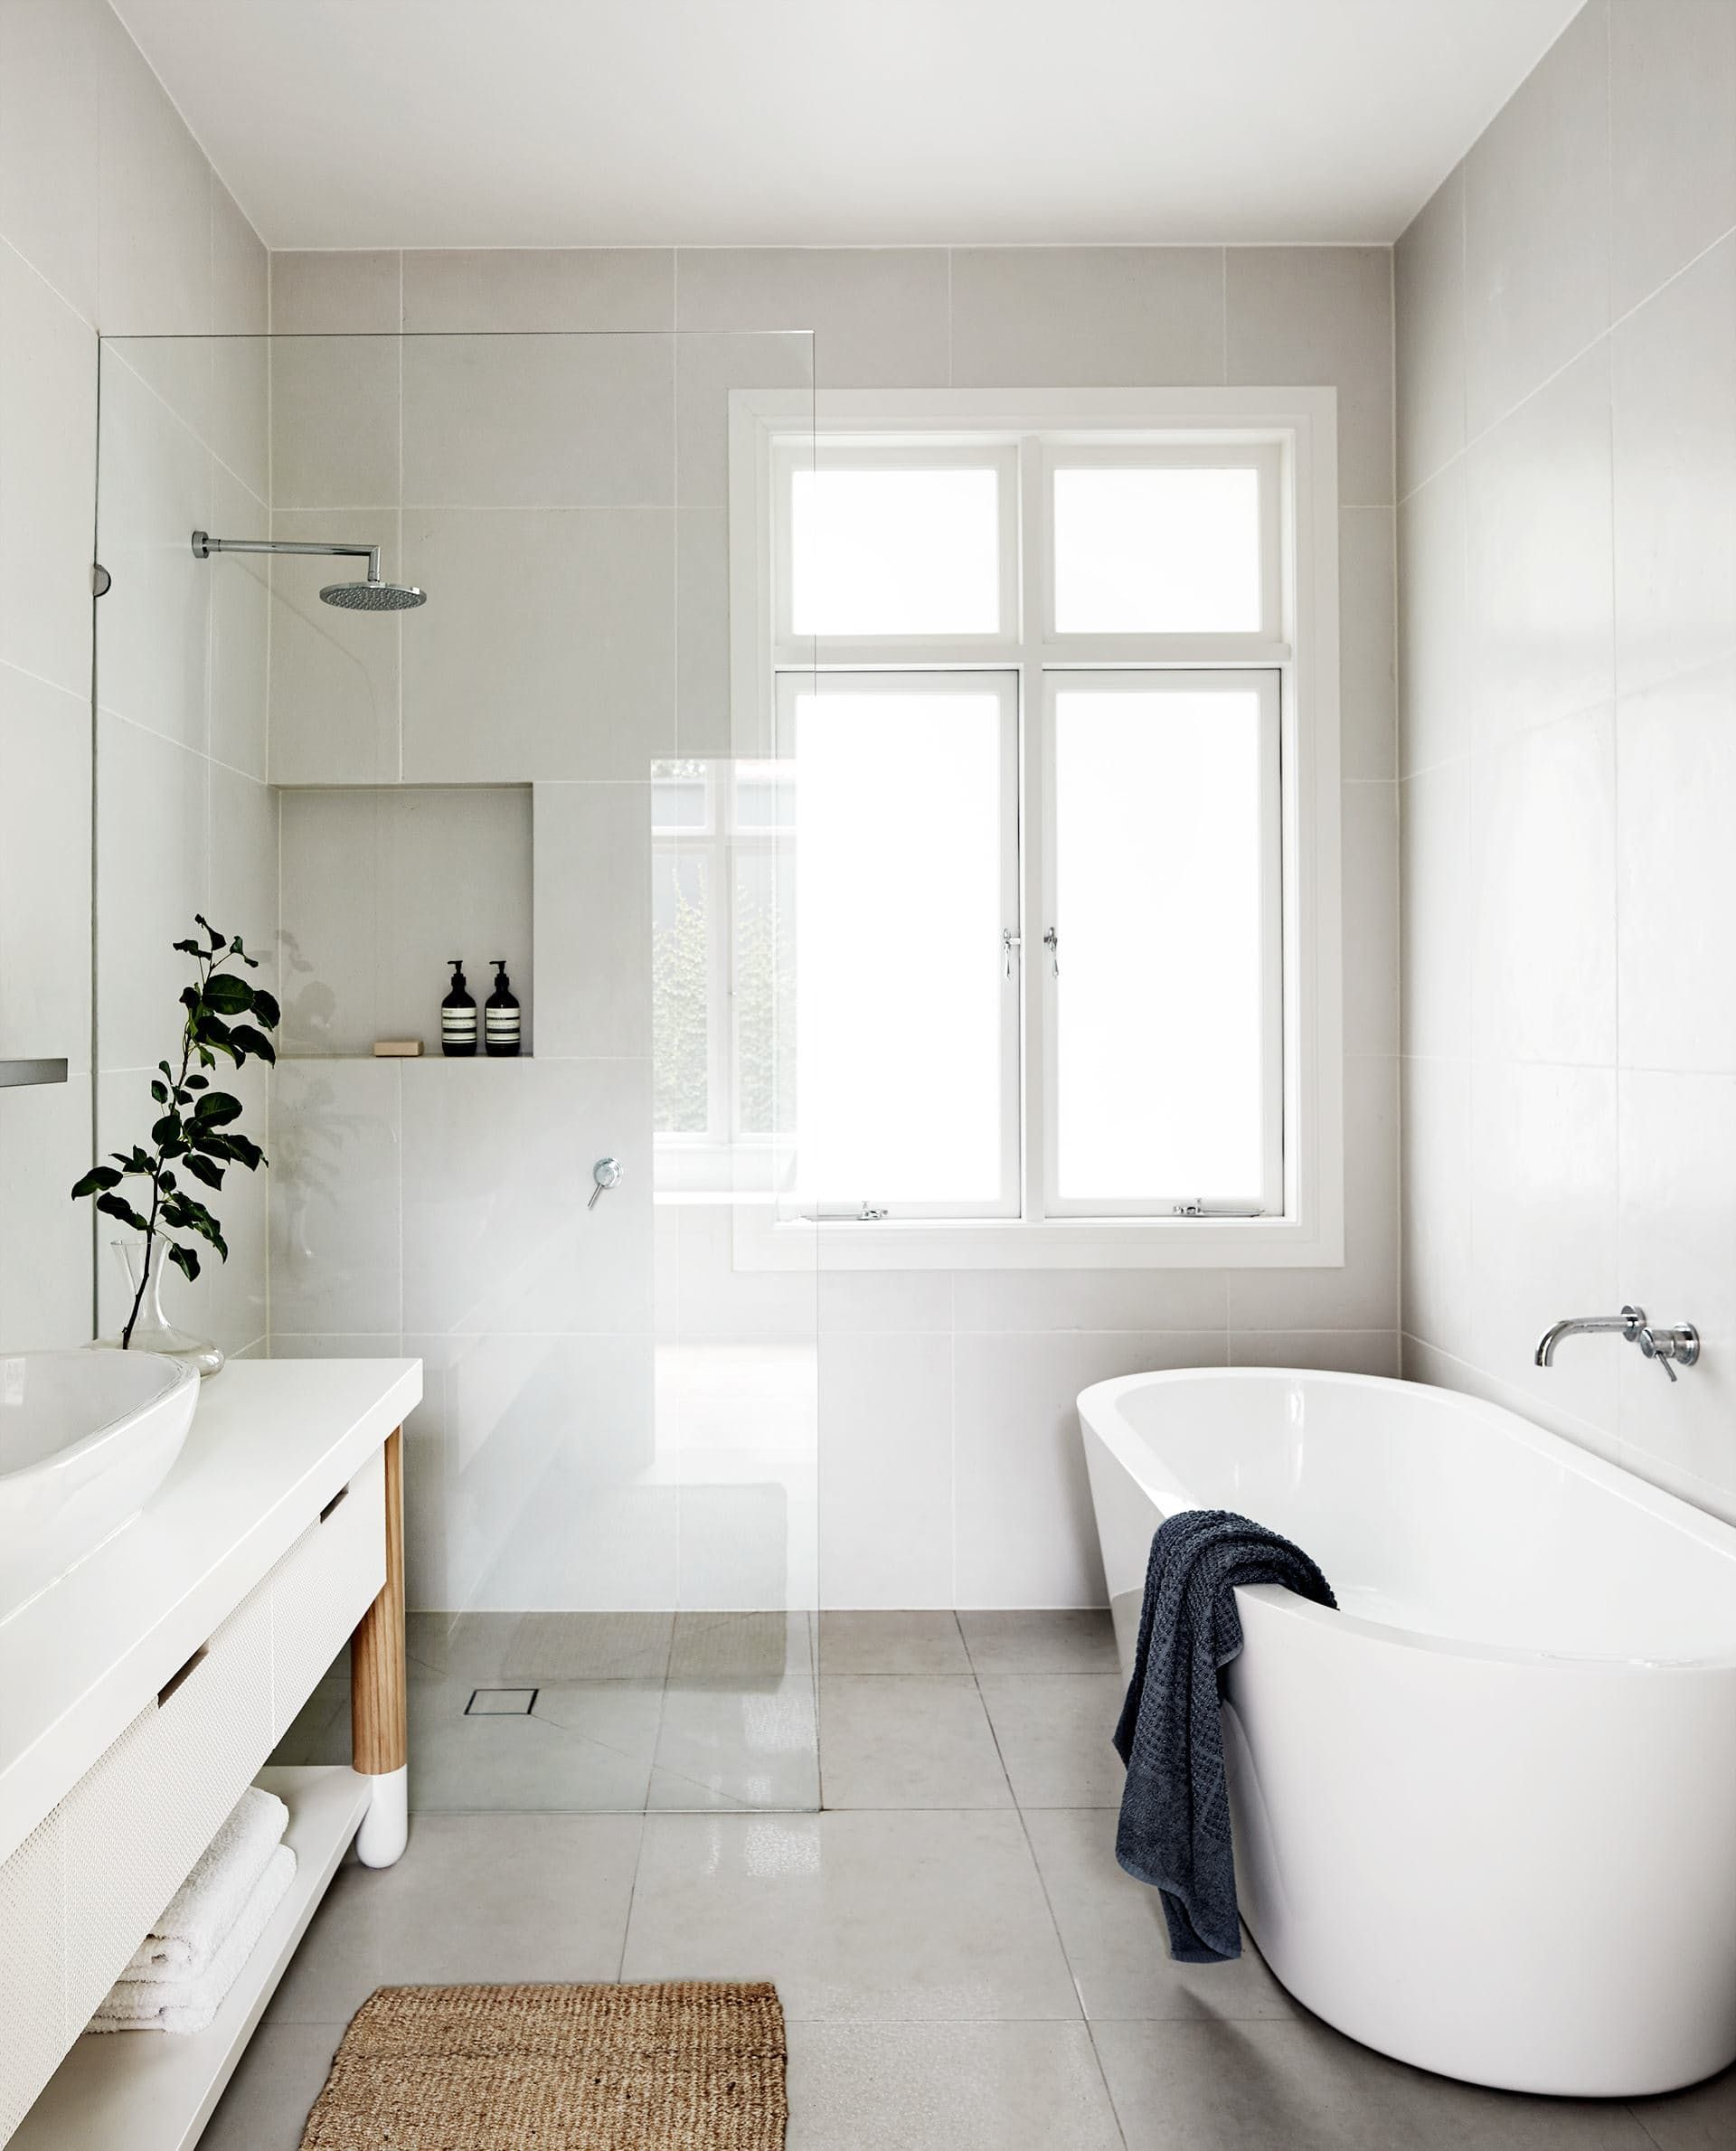 Stylish Remodeling Ideas for Small Bathrooms | For the Home ...